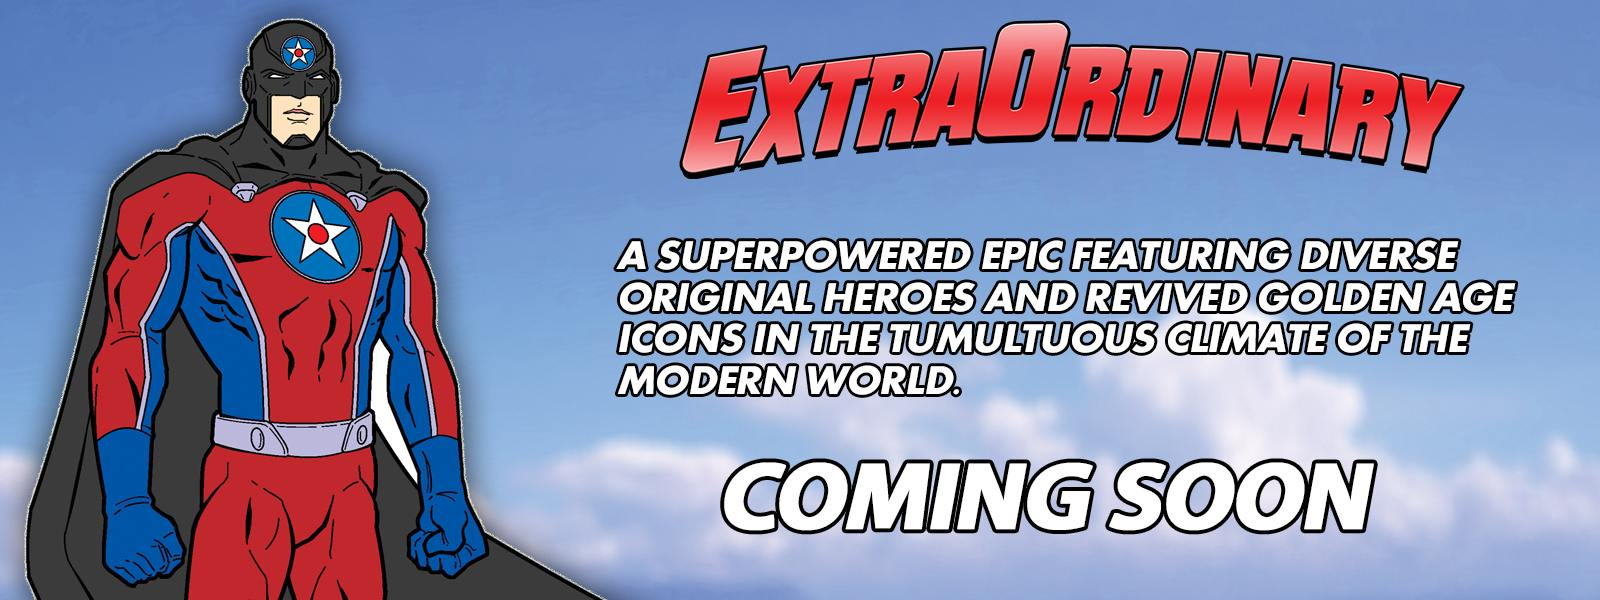 TJ Comics Announces New Ground-Breaking Superhero Line 'ExtraOrdinary'